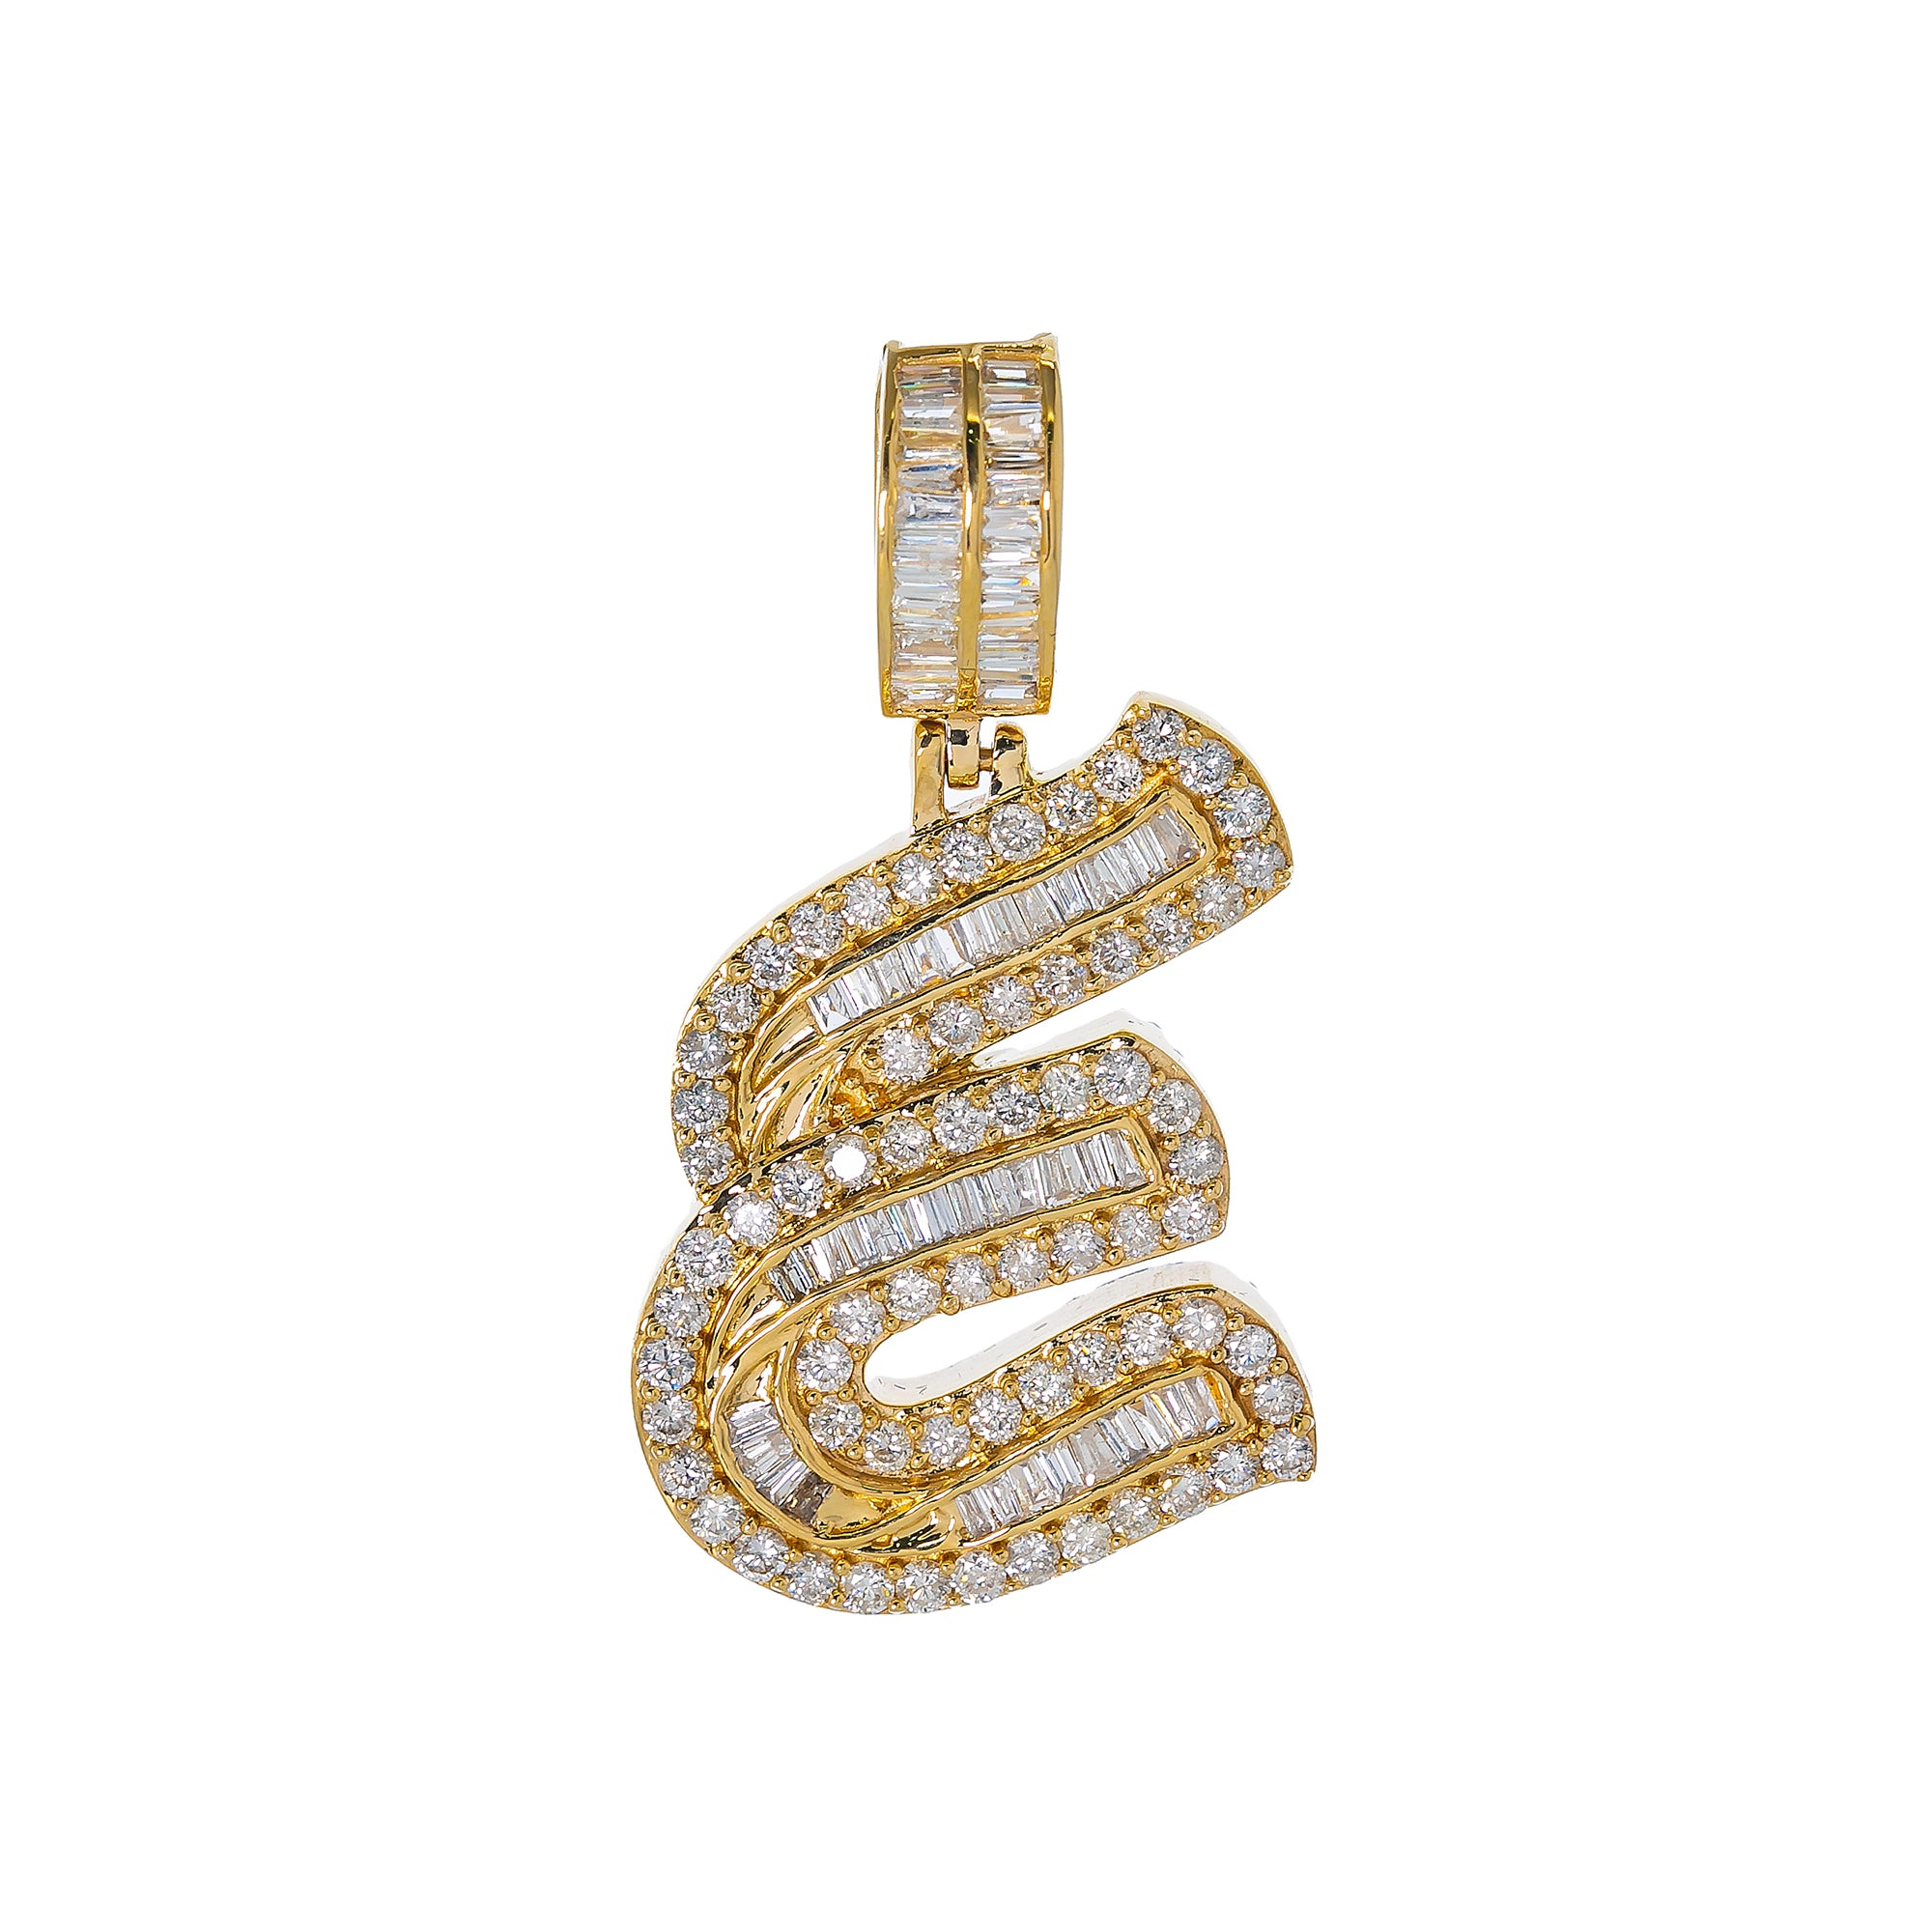 14K YELLOW GOLD UNISEX LETTER E WITH 2.01 CT DIAMONDS